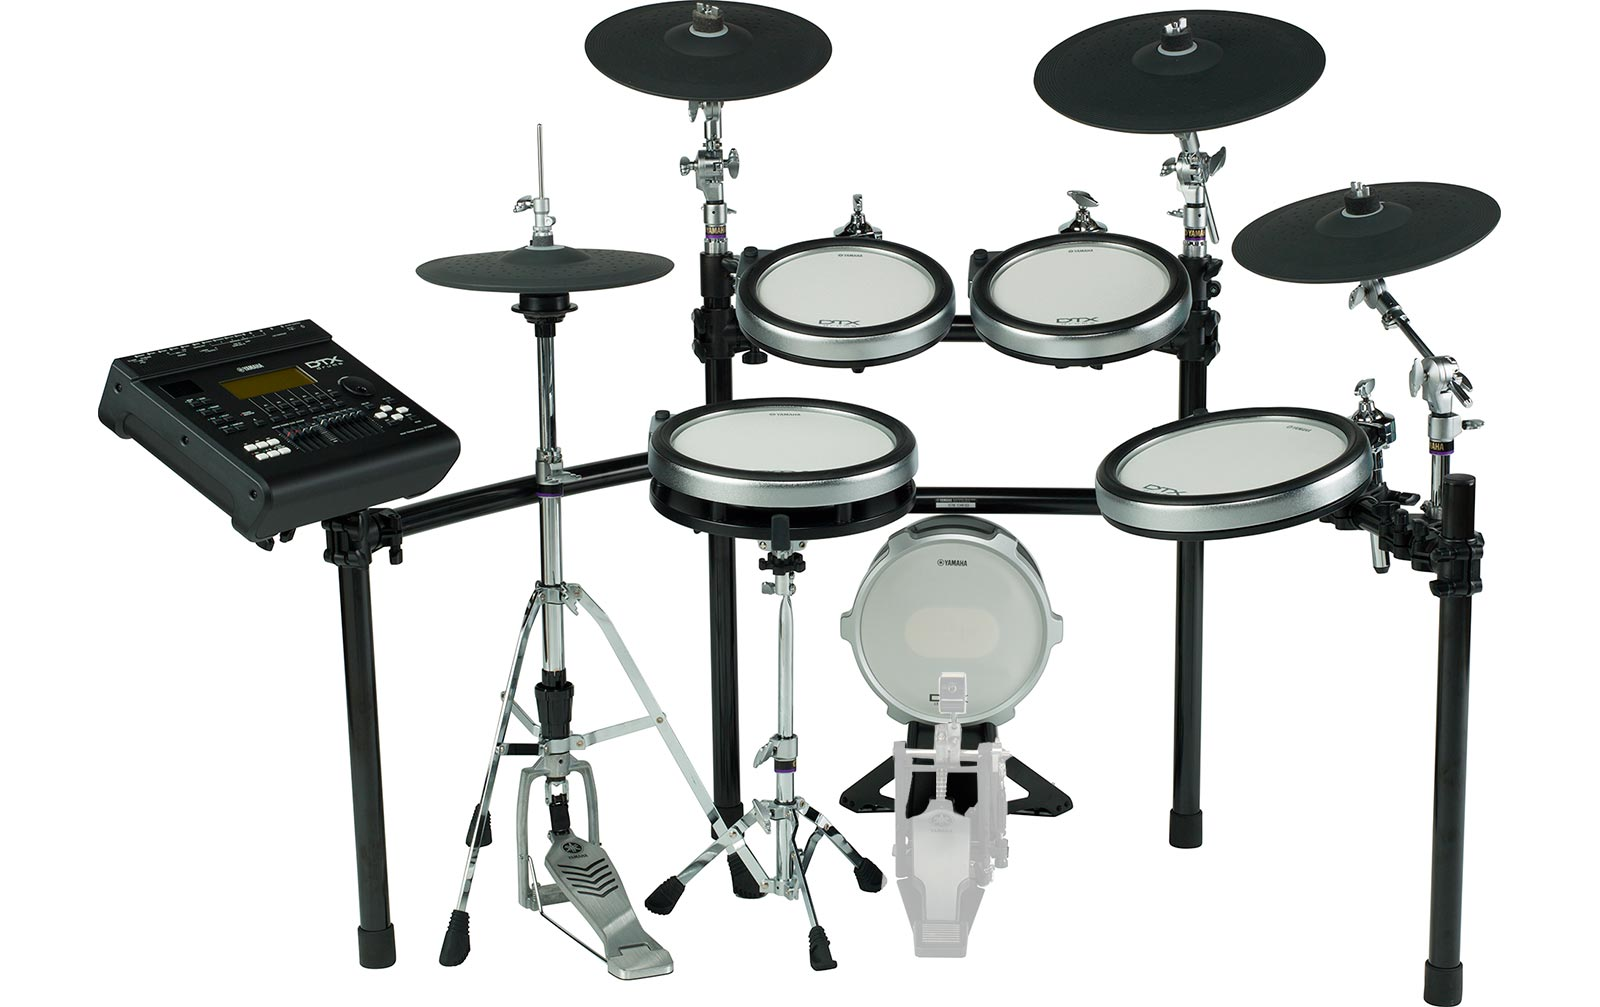 yamaha-dtx920k-e-drum-set